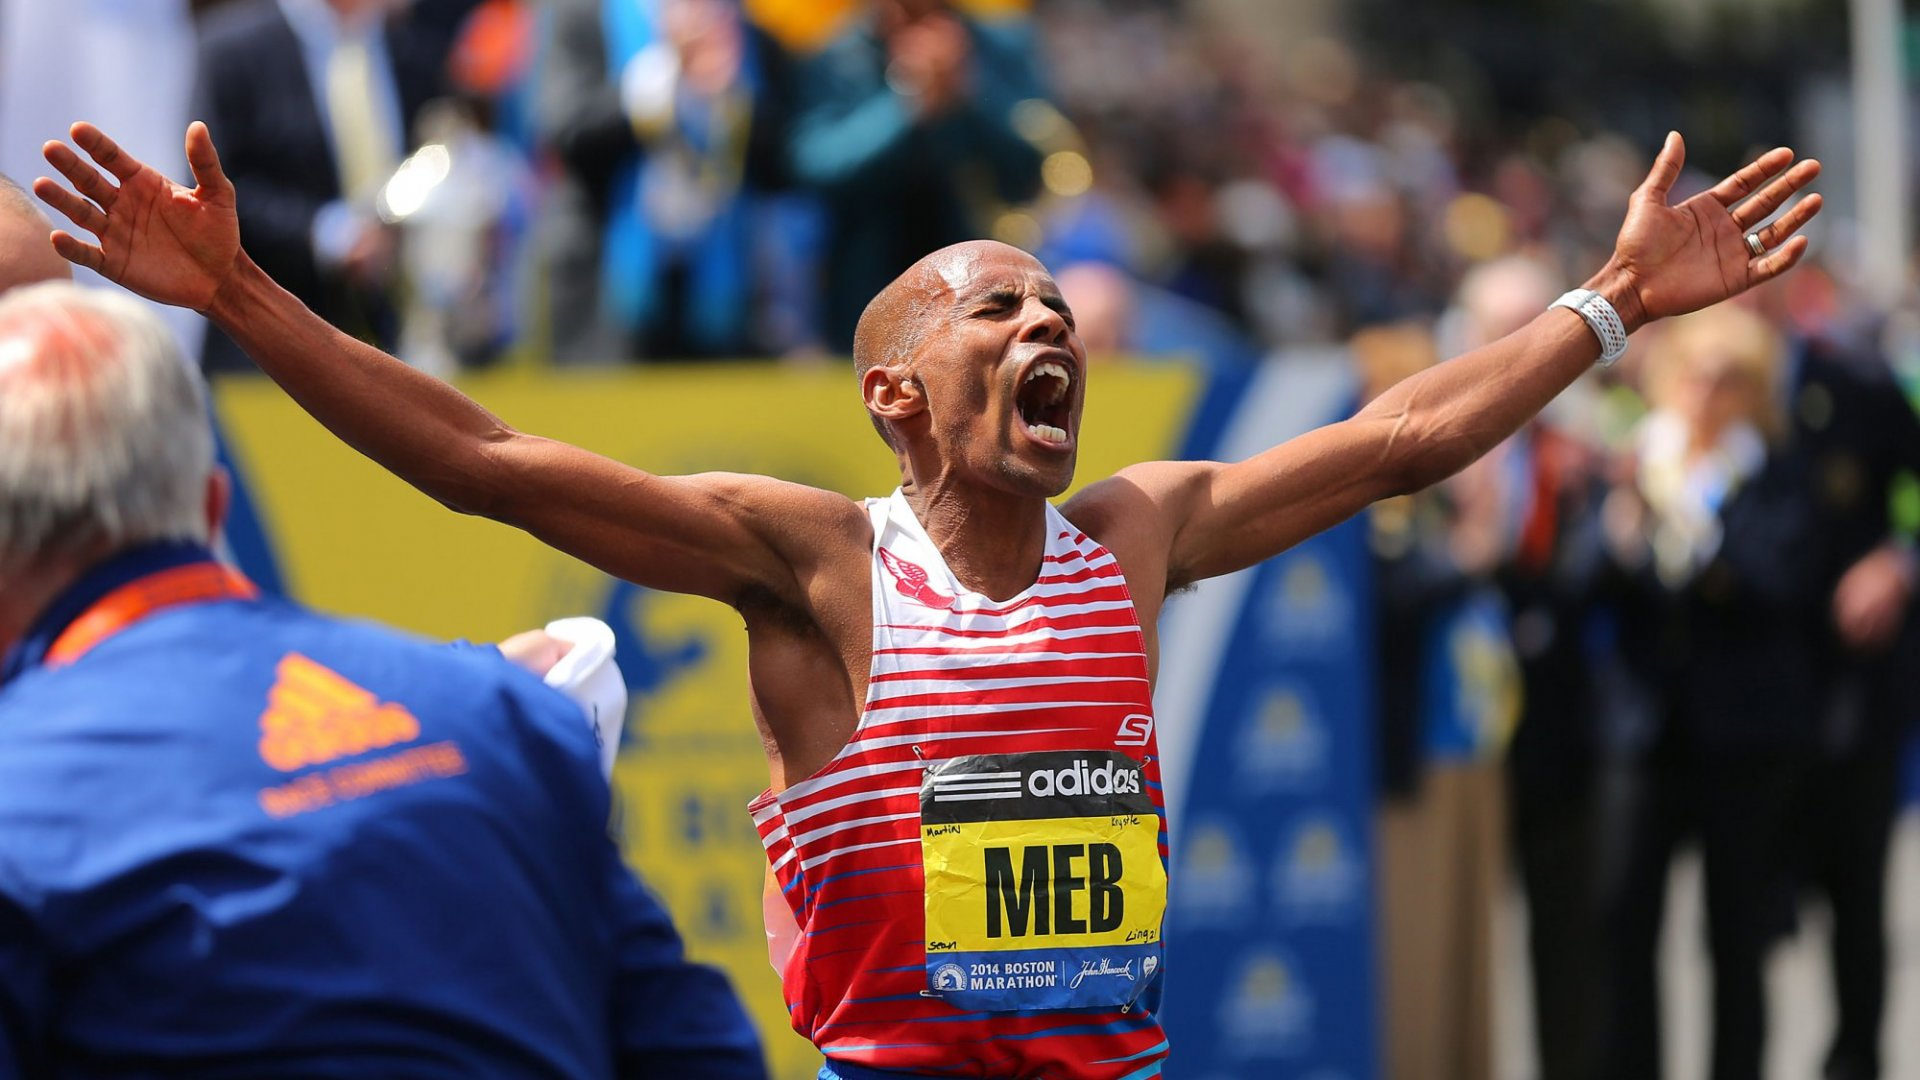 Meb Keflezighi's 3 Rules for Success in the Long Run